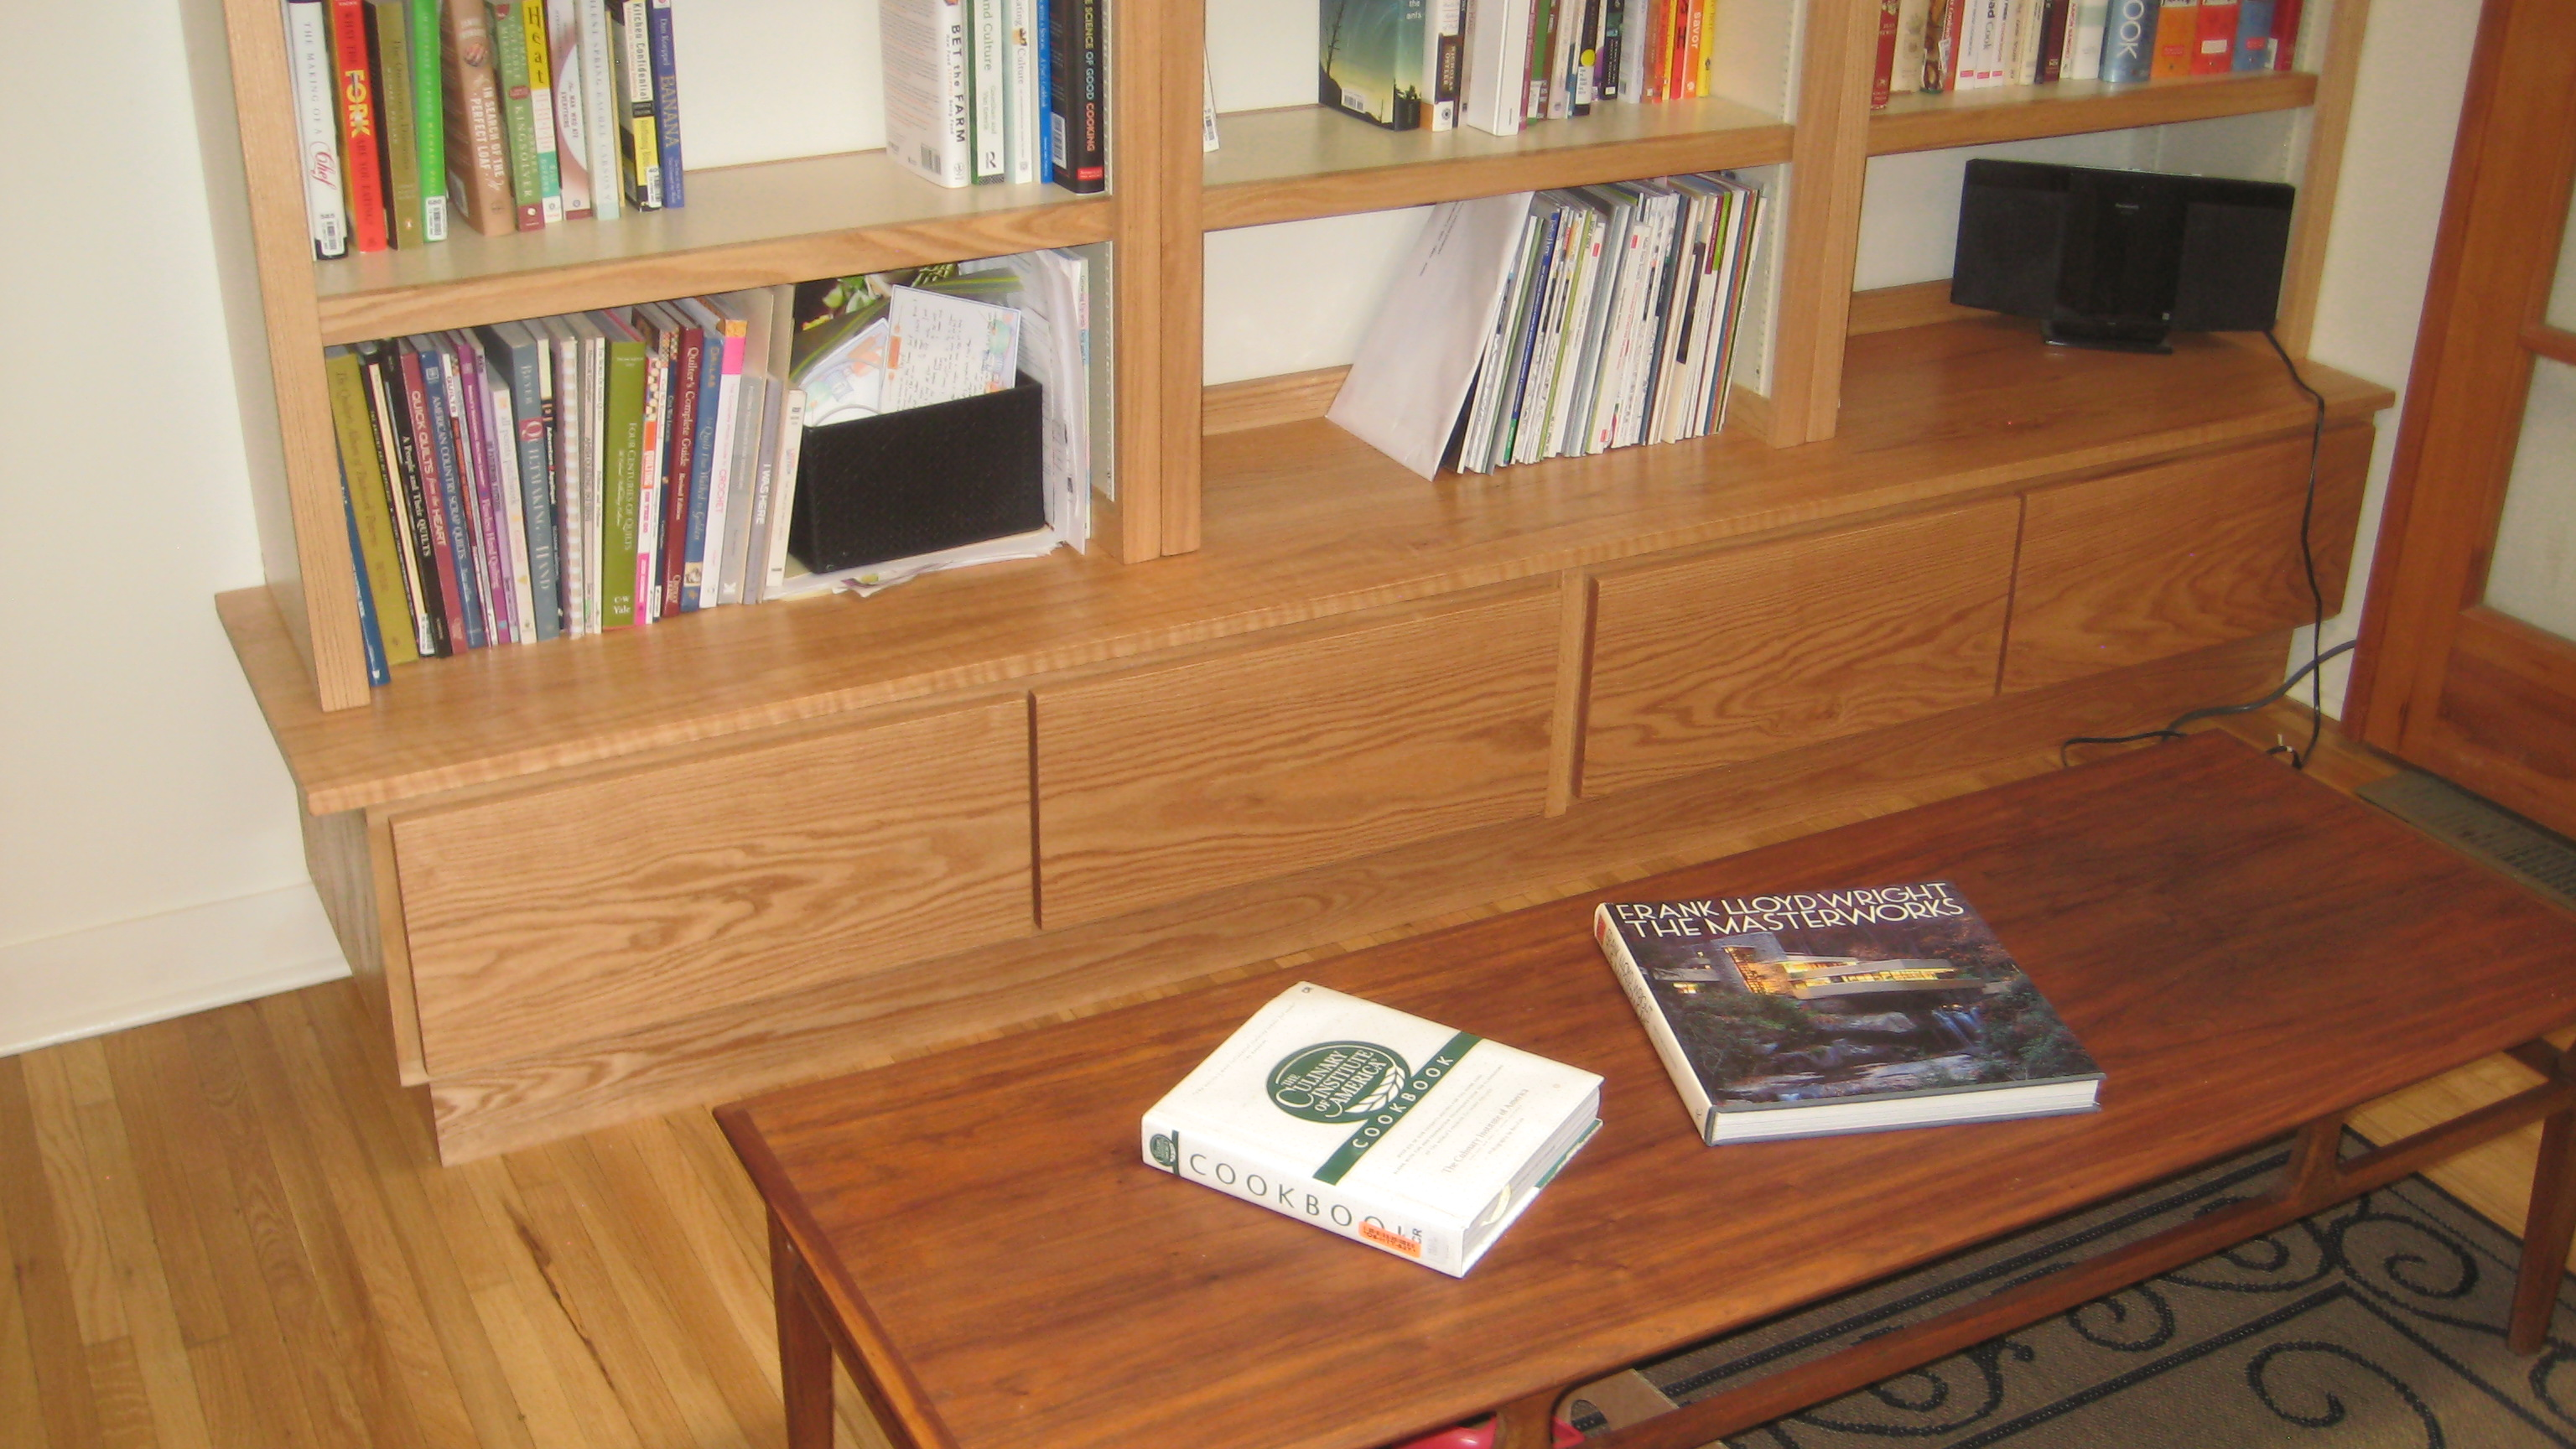 Oak bookshelf with lower drawers